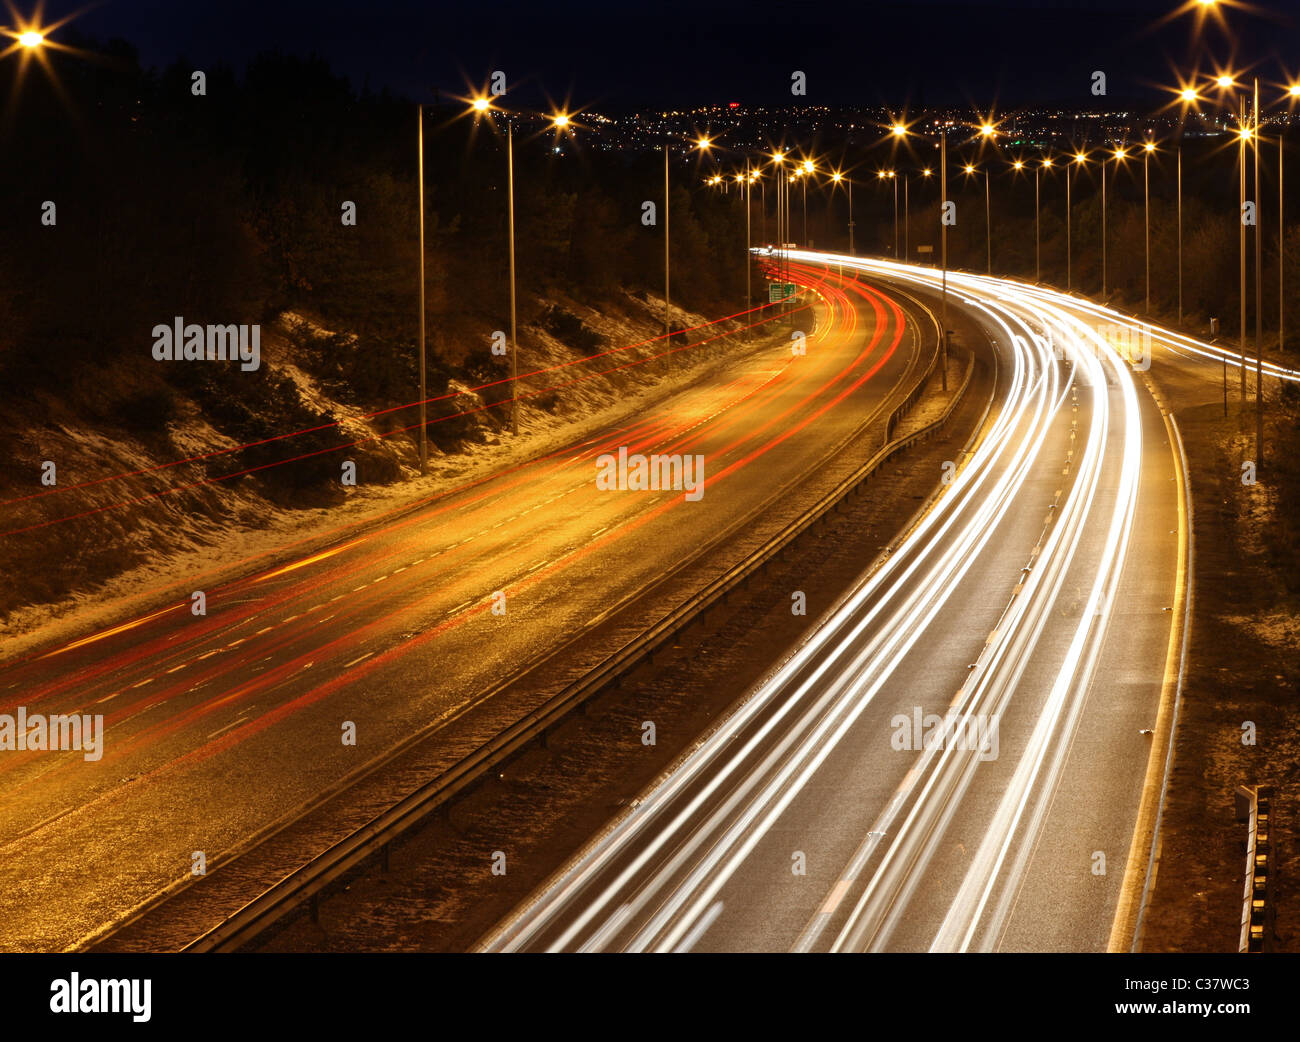 Traffic light trails seen at night on the busy A90 dual carriageway leading in to the city of Aberdeen, Scotland, - Stock Image